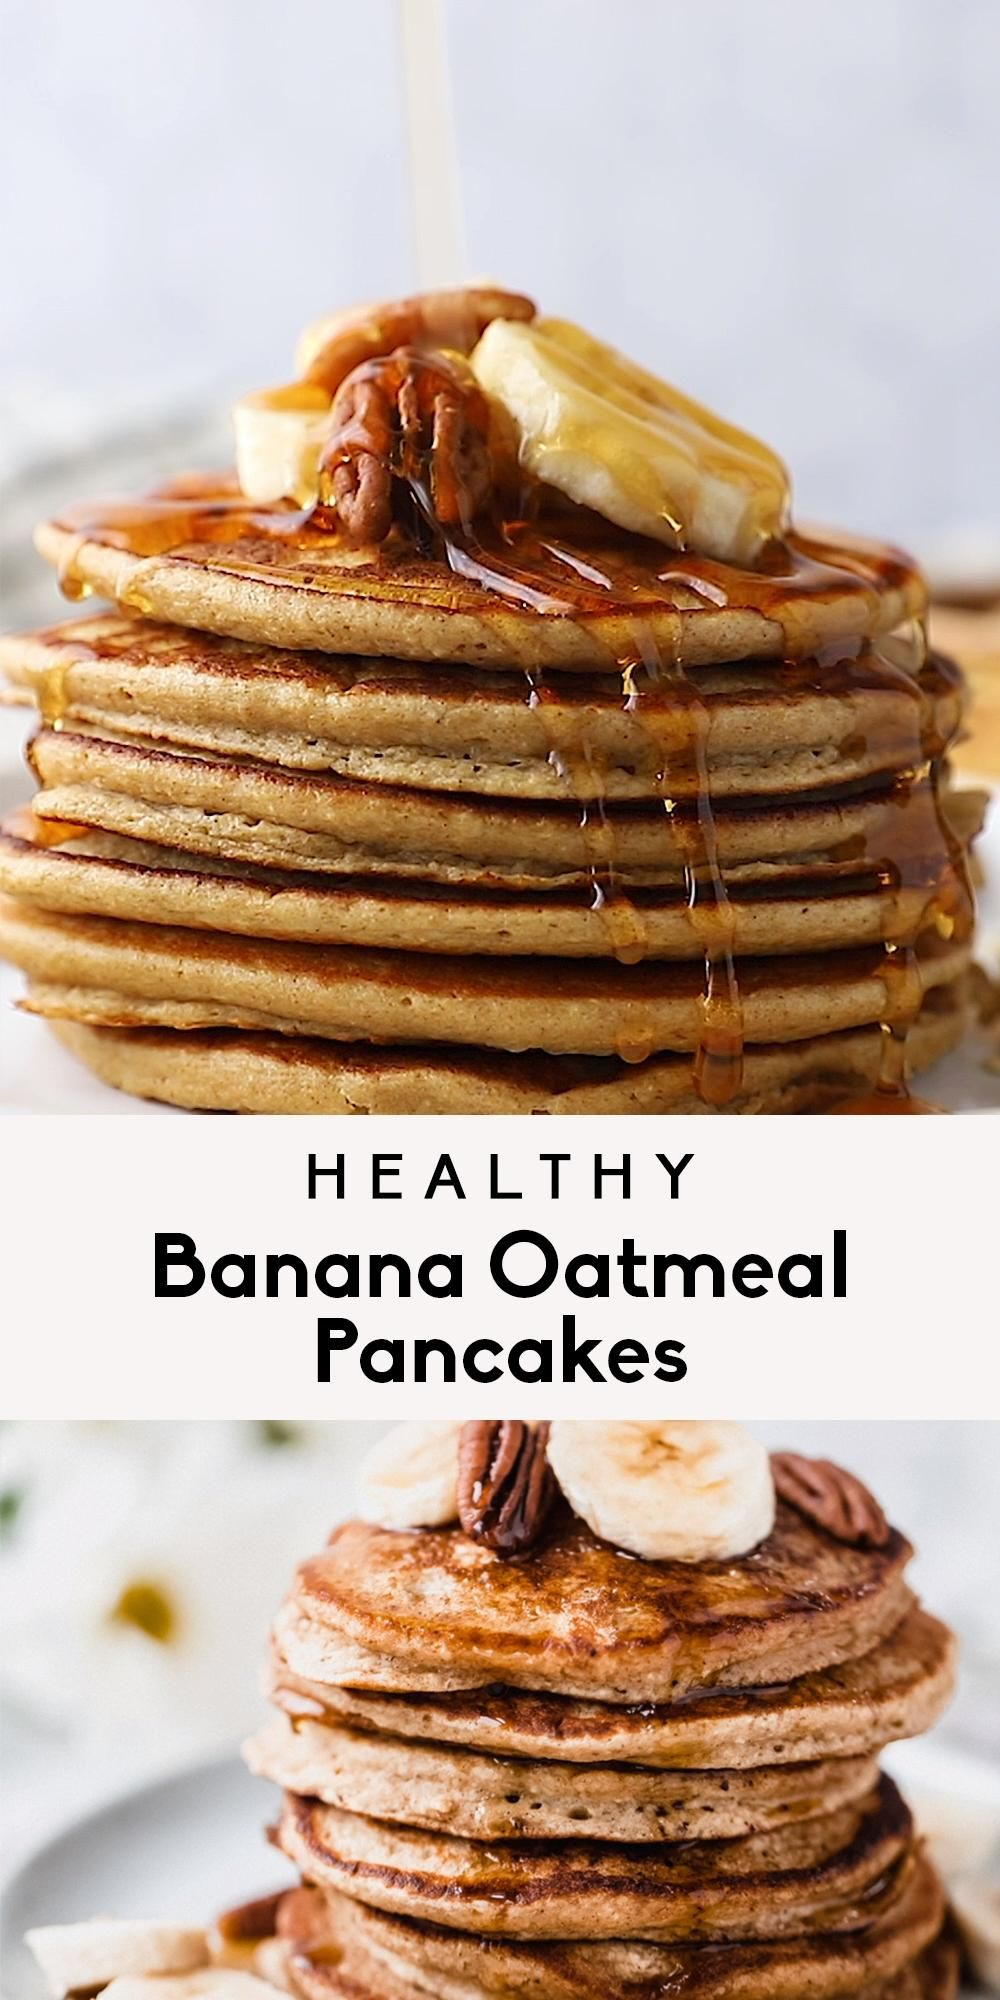 Healthy Banana Oatmeal Pancakes (made in the blend